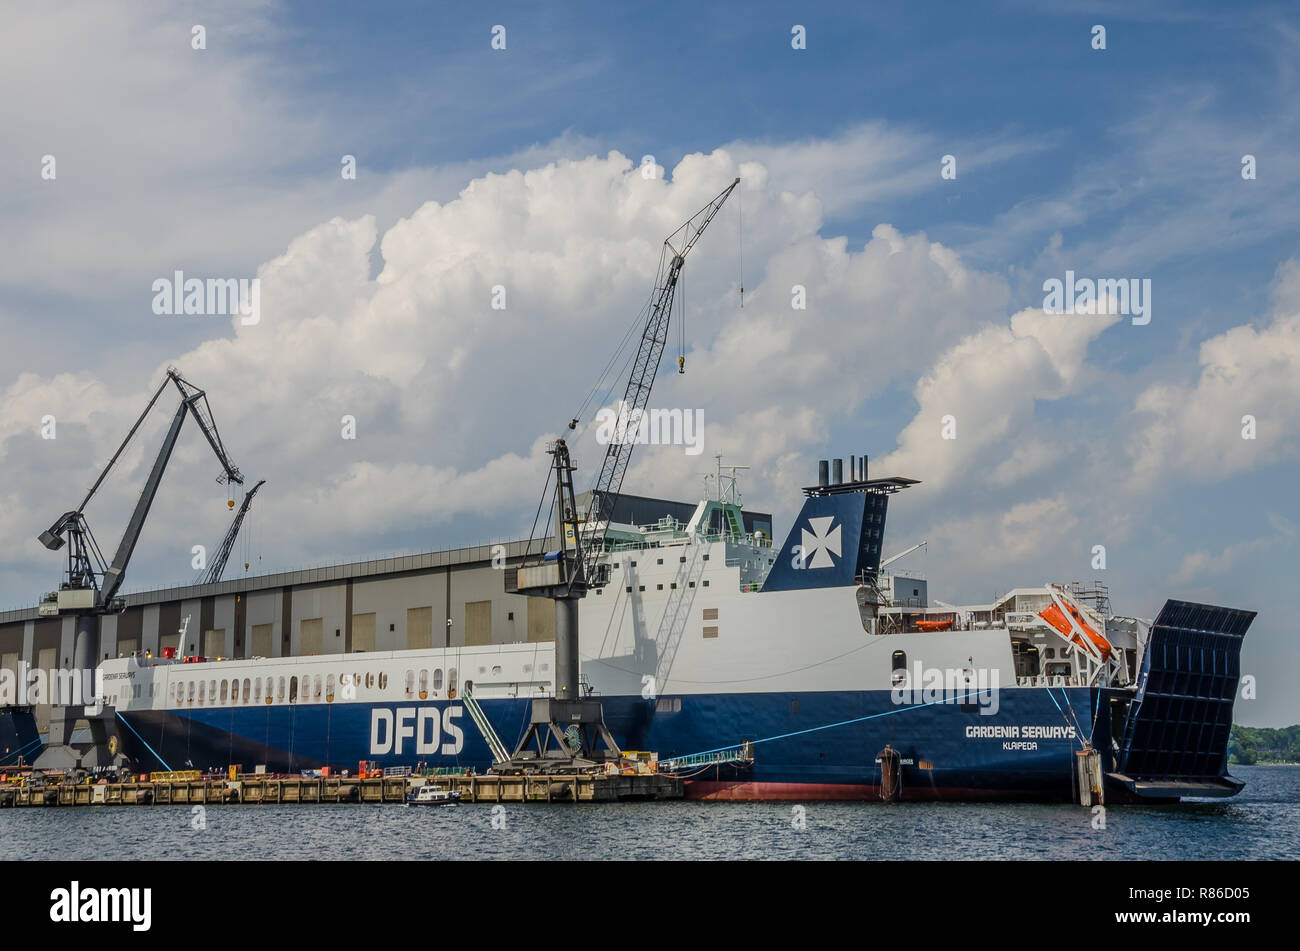 Since its foundation in 1872 Flensburger Schiffbau-Gesellschaft FSG have designed and built more than 750 ships, some of which have a  unique design Stock Photo